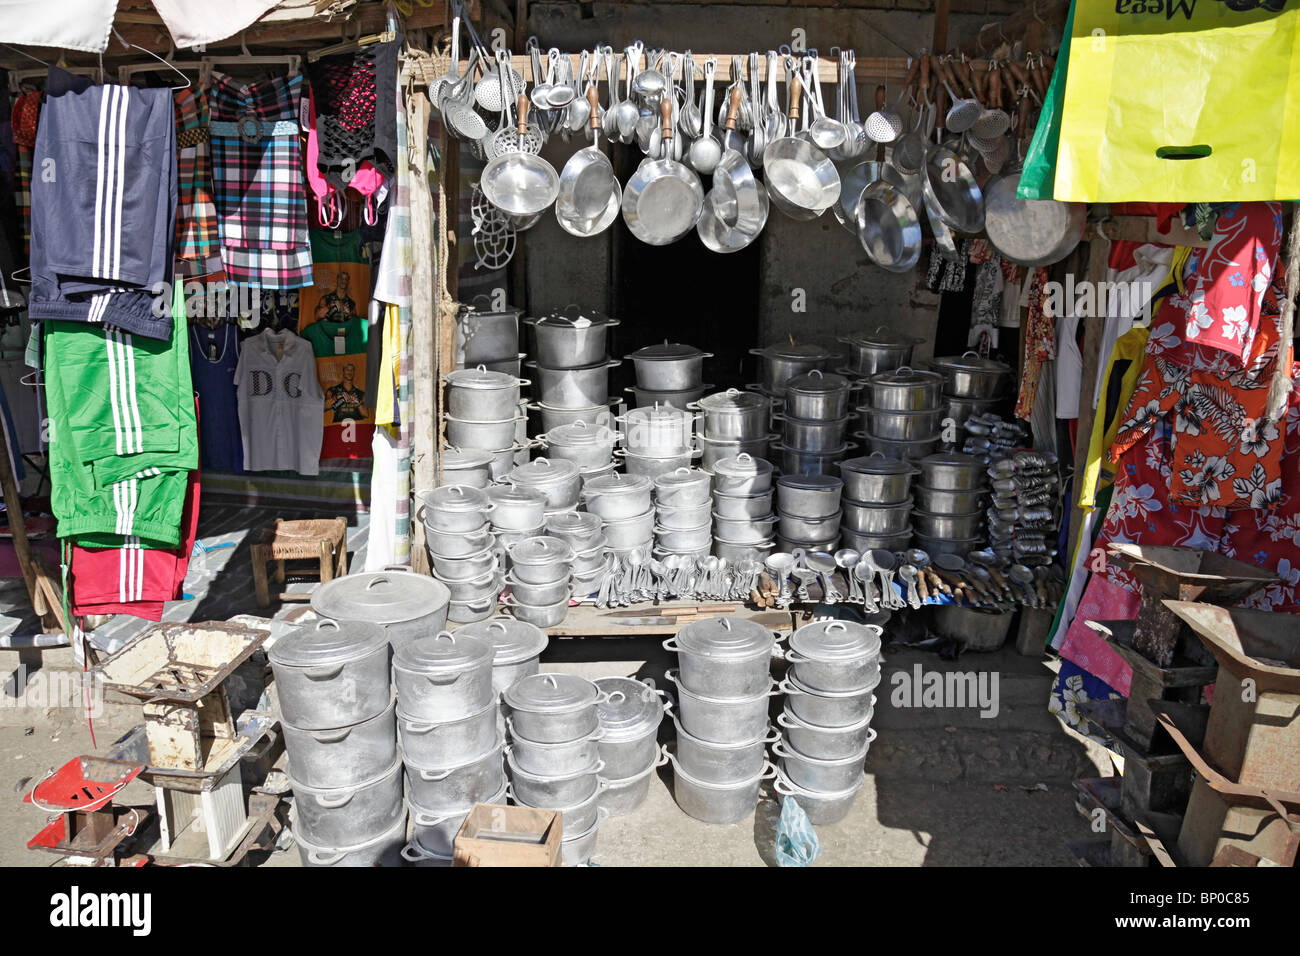 Household goods like pots and pans in a stall in the market at Toliara / Toliary / Tulear, south-west Madagascar - Stock Image